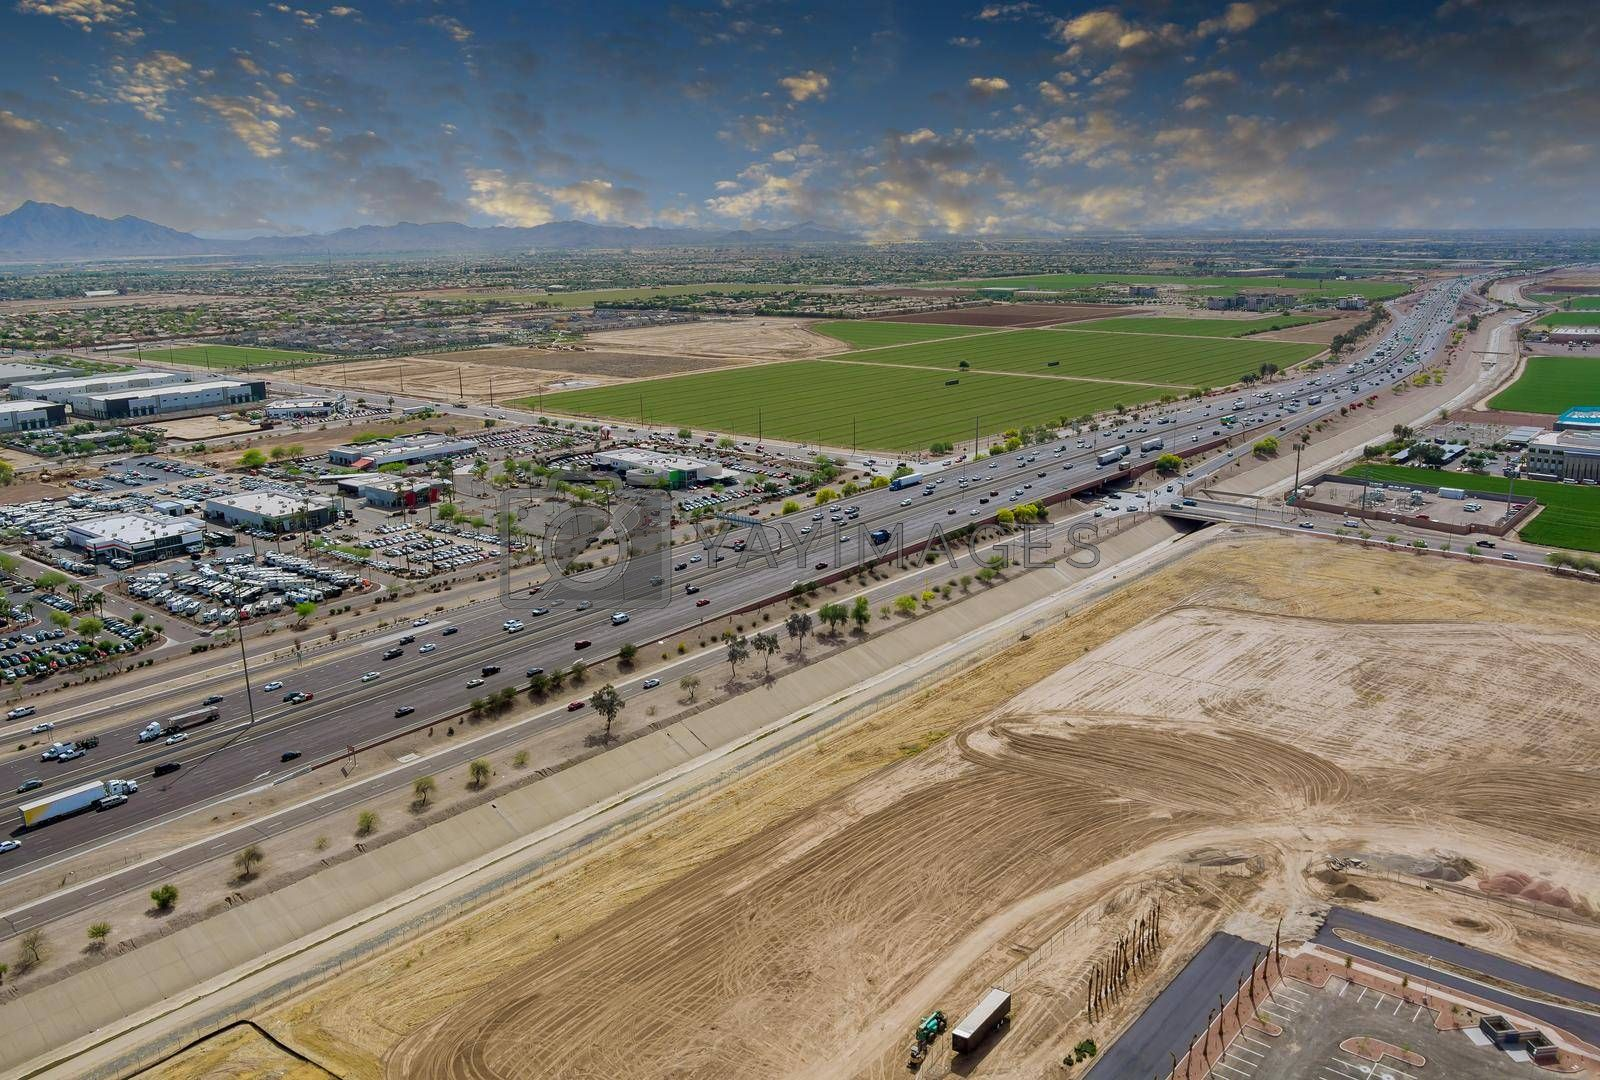 Aerial view shopping district center and parking lot in Avondale small town panorama view freeway interchange the during rush hour near Phoenix Arizona USA.